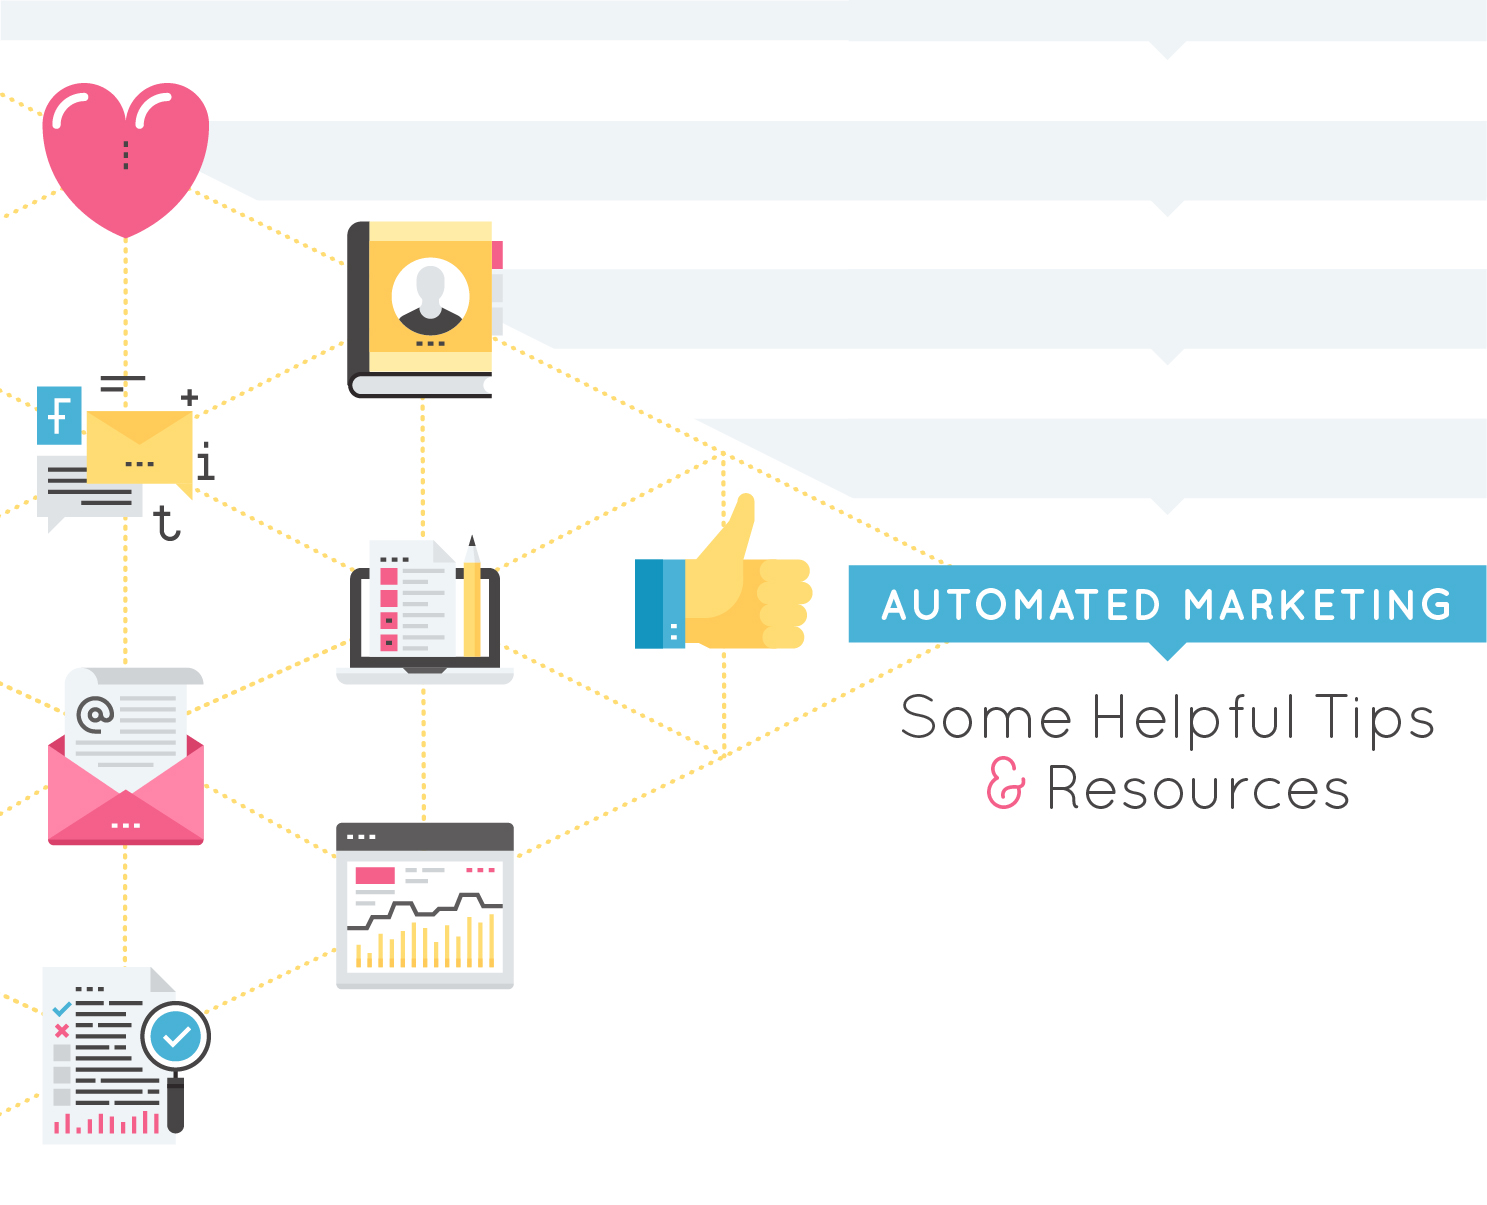 Automated Marketing – Some Helpful Tips and Resources